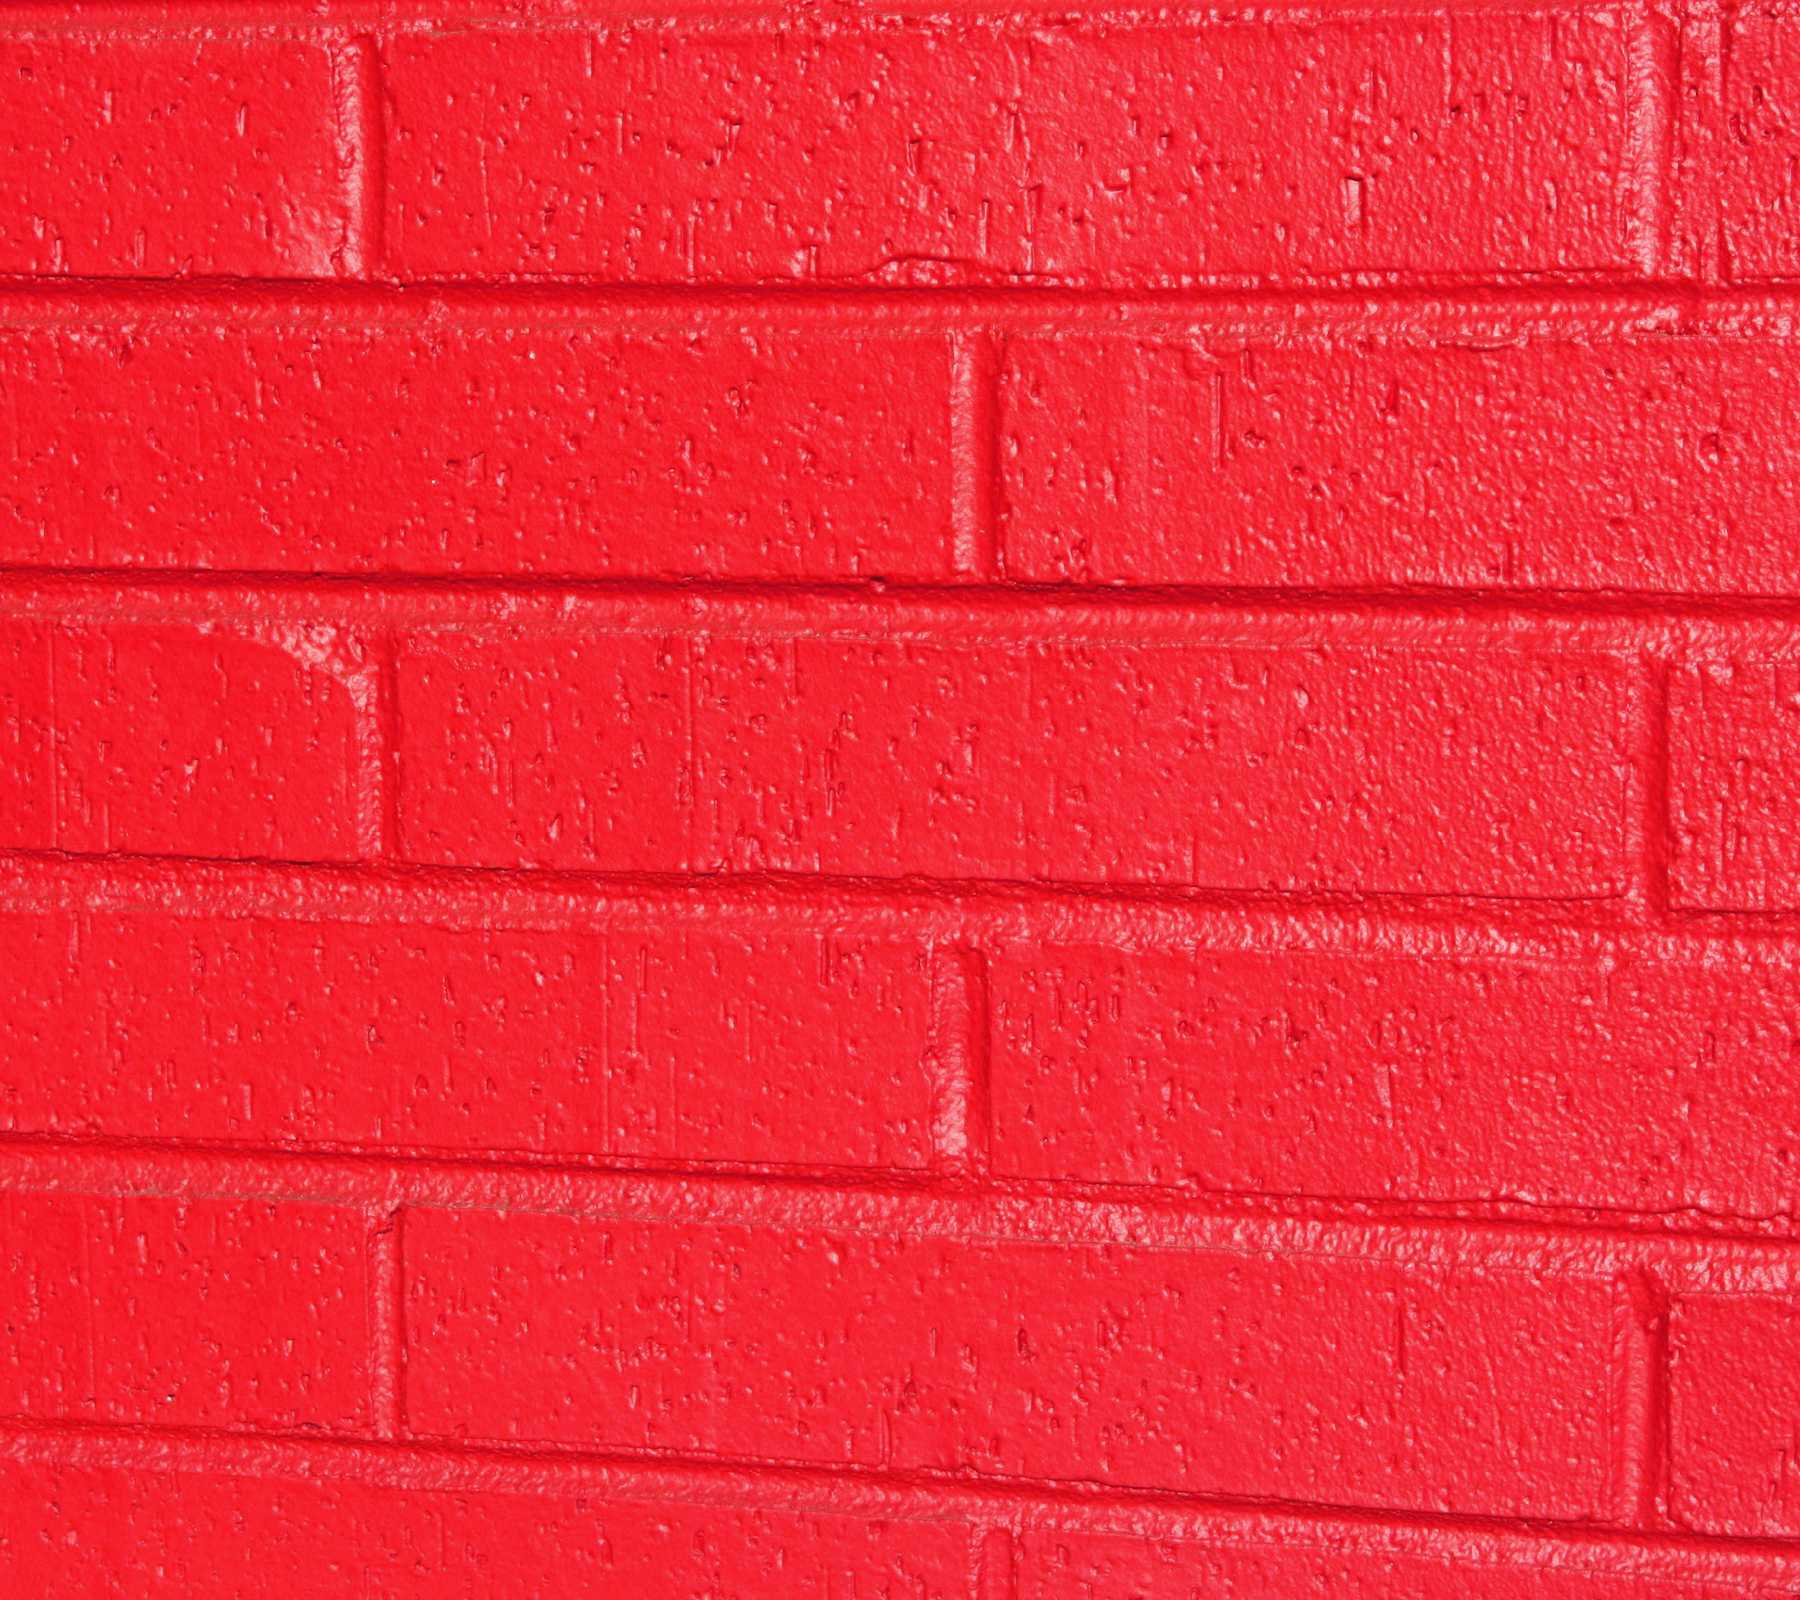 Bricks painted bright red background image wallpaper or for Bright wallpaper for walls